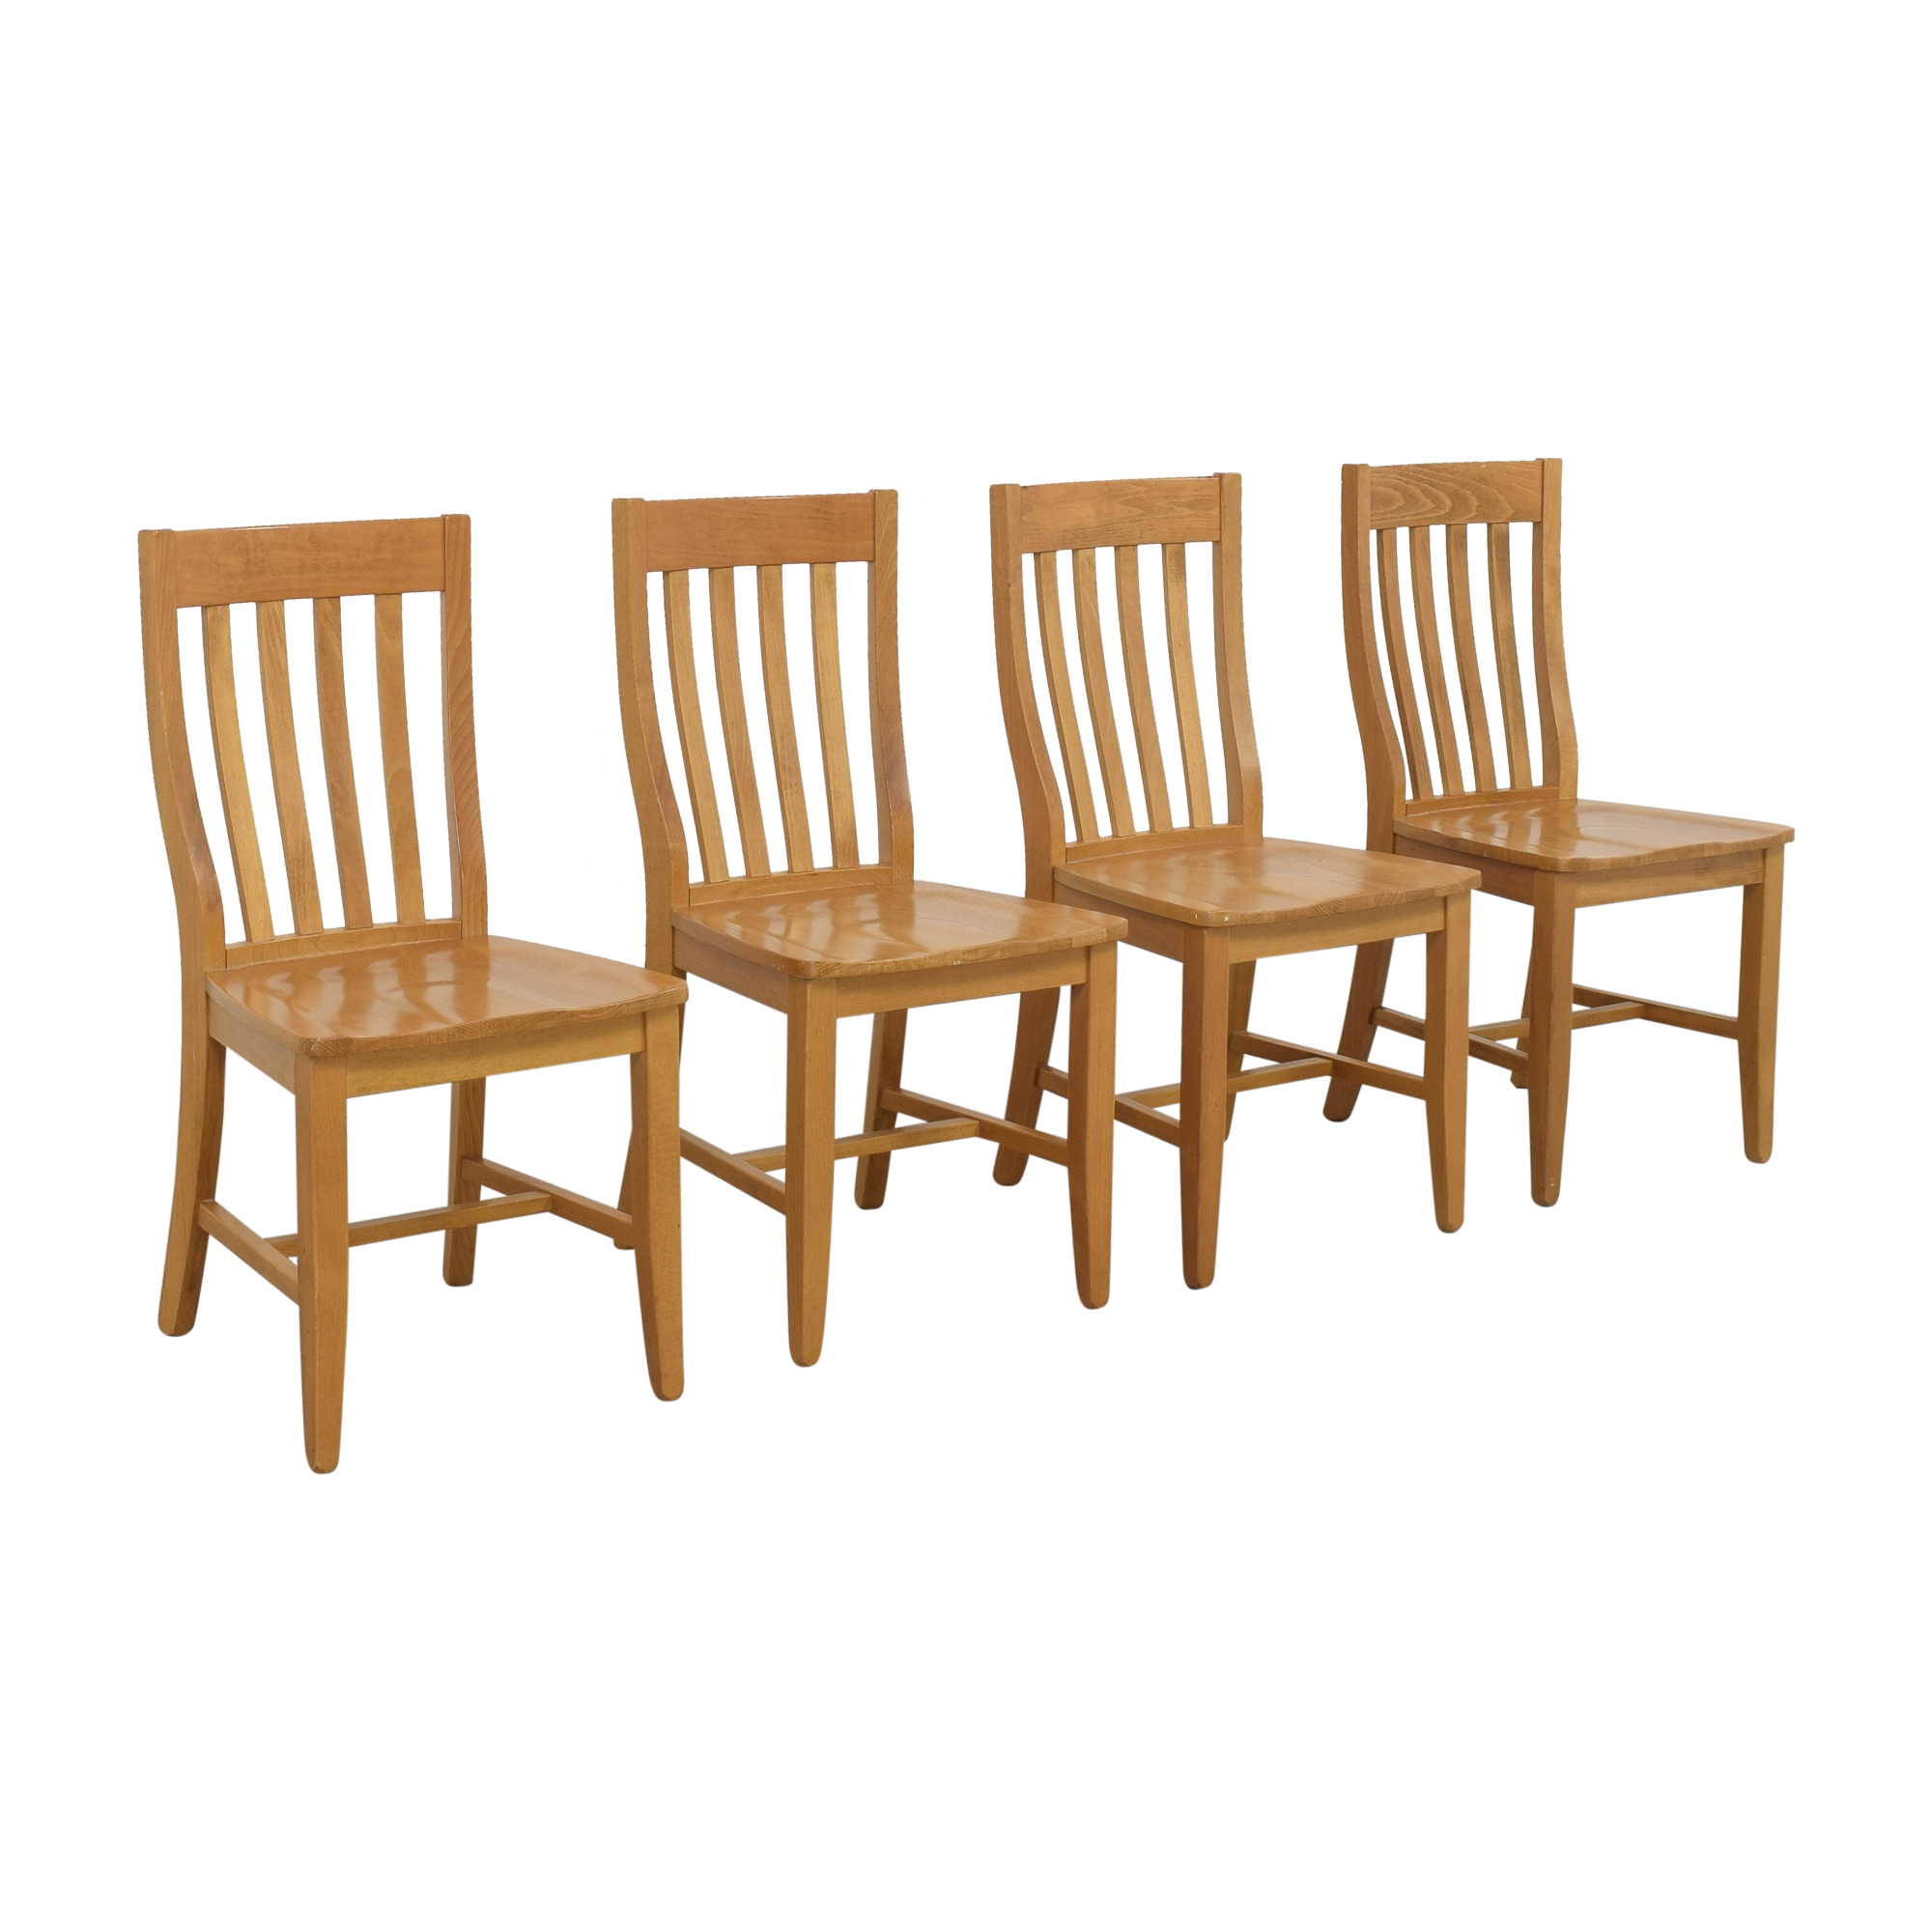 Pottery Barn Pottery Barn Schoolhouse Chairs price